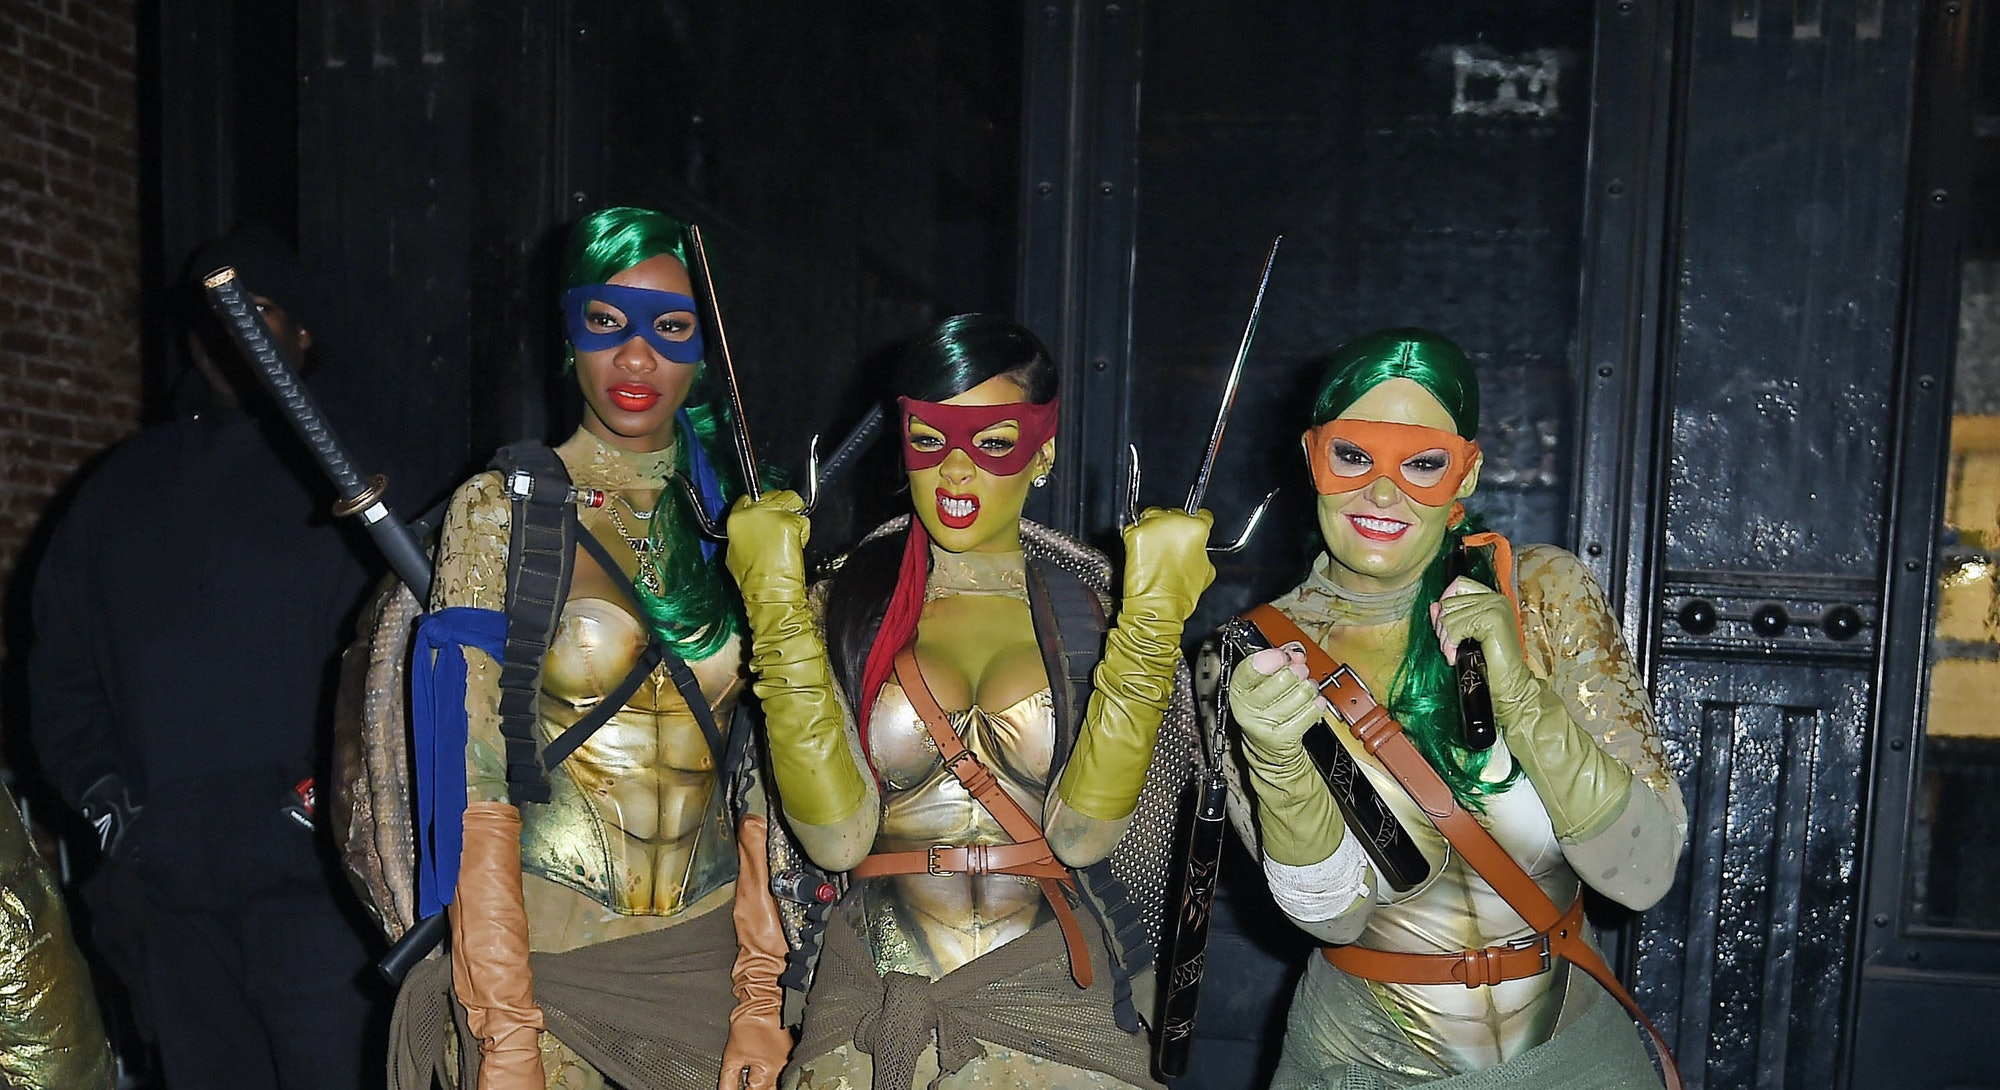 Rihanna dressed as a Teenage Mutant Ninja Turntle for Halloween in 2014.